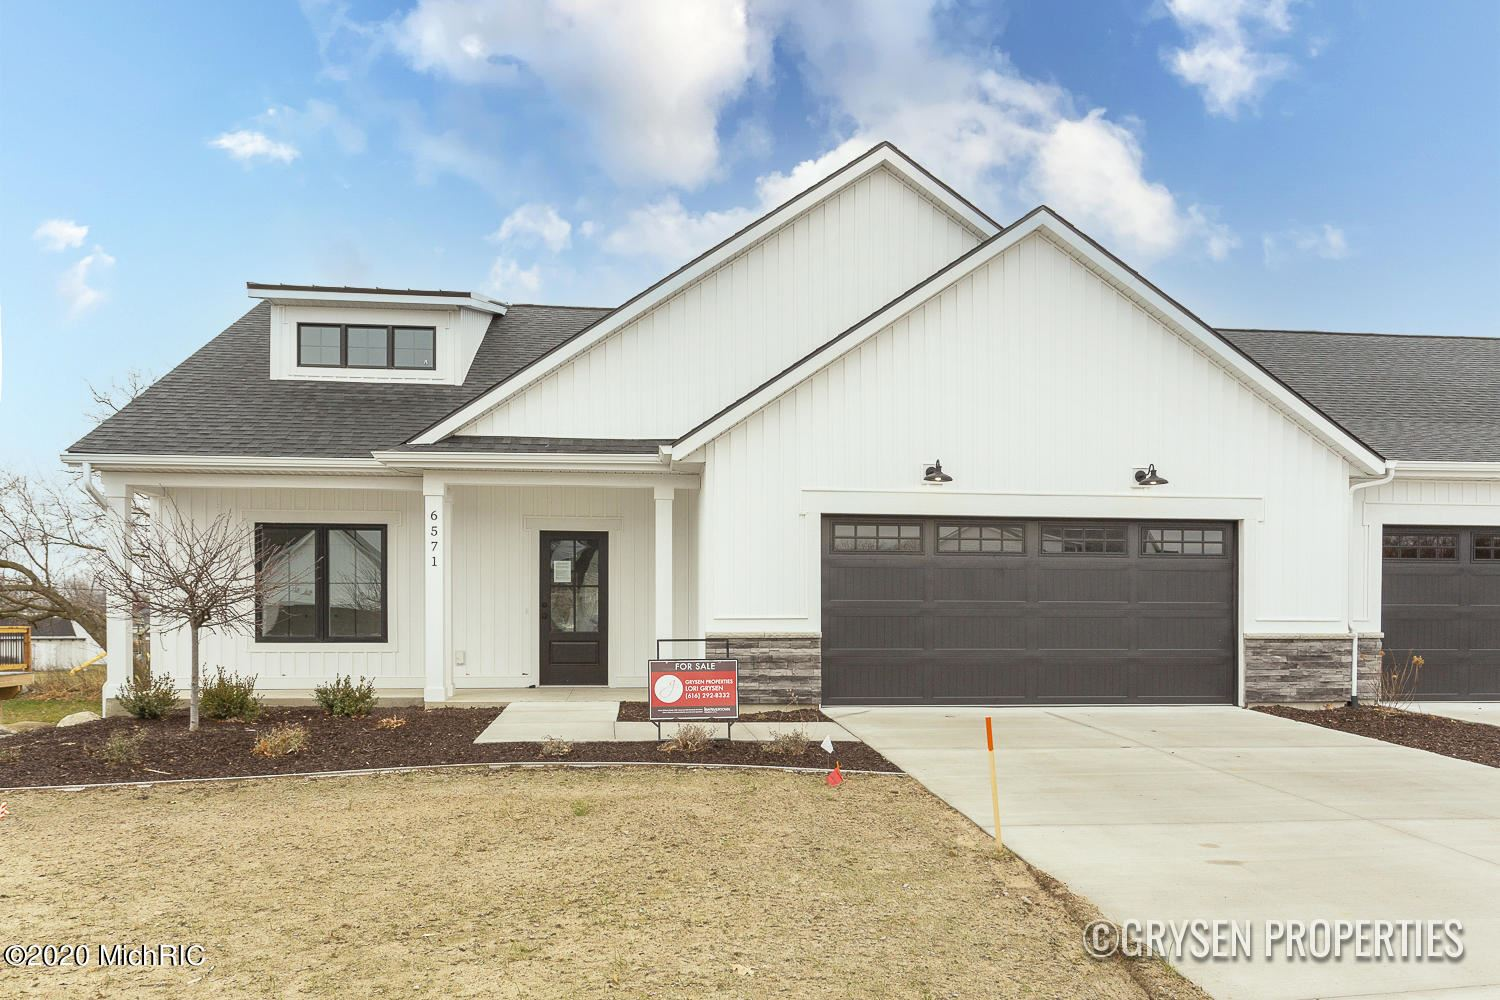 6571 Sheldon Crossing Drive #8, Hudsonville, MI 49426 - MLS#: 20026830